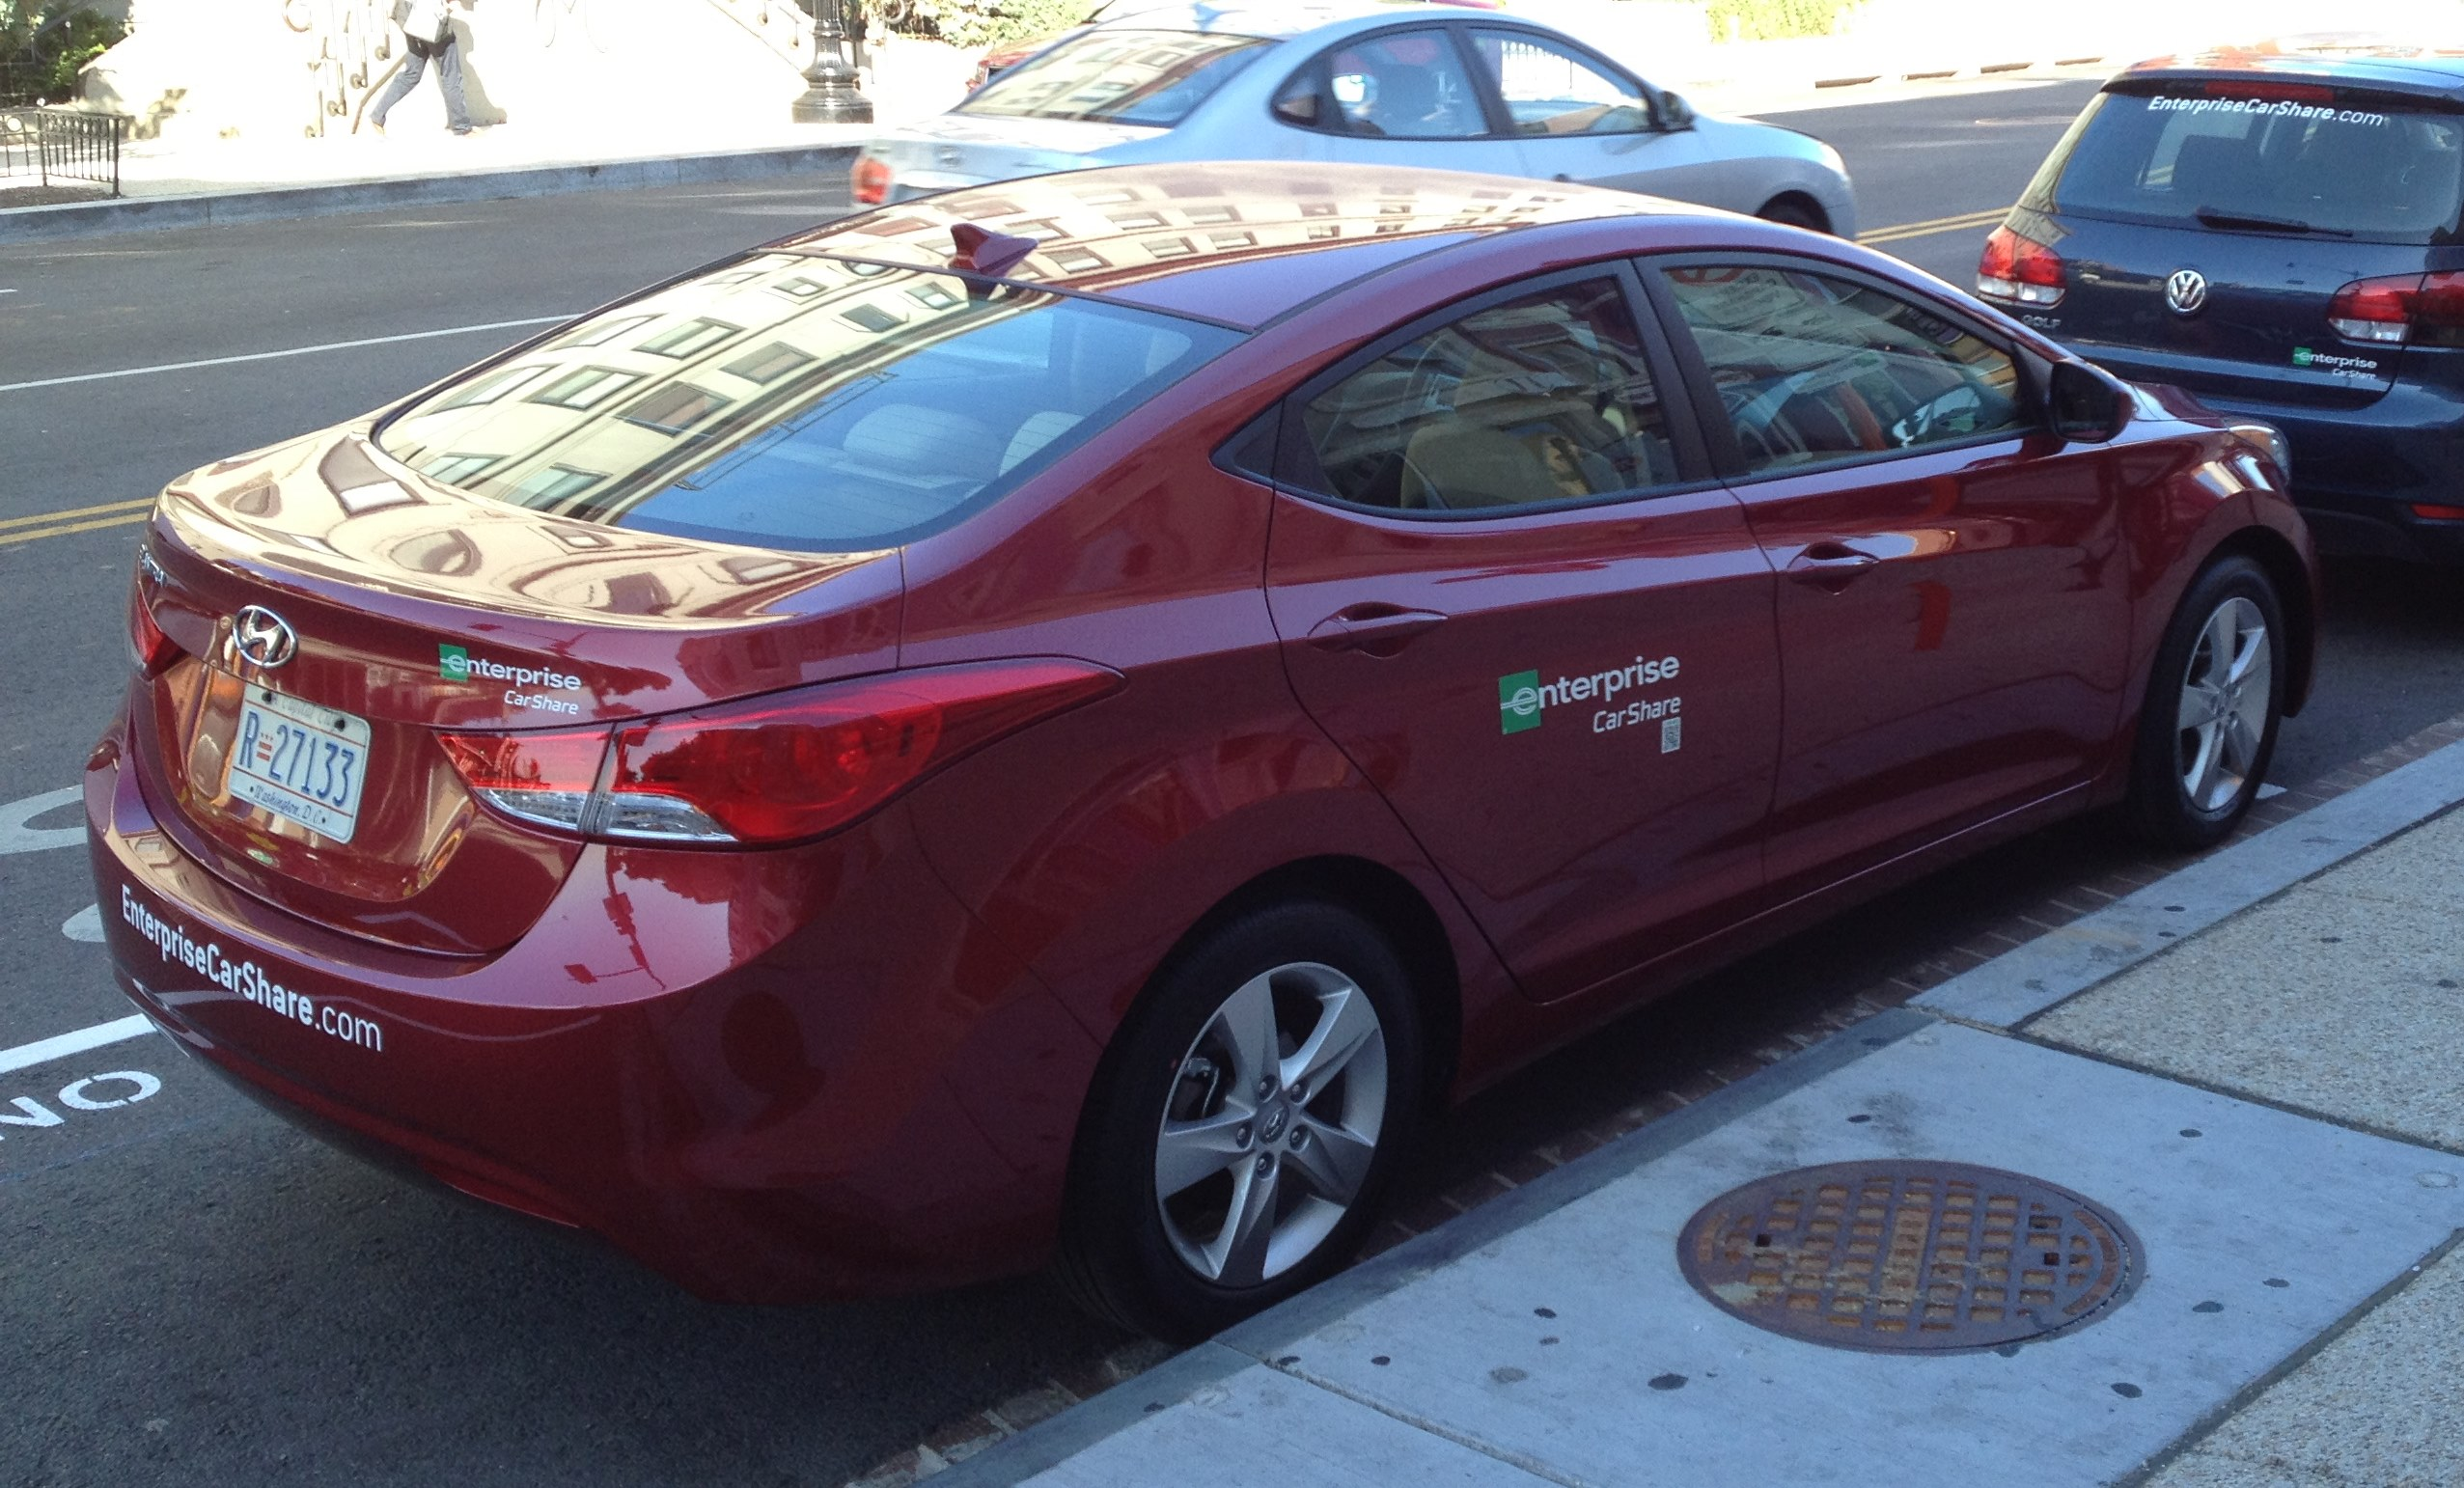 Enterprise Car Rental Vermont Ave Dc